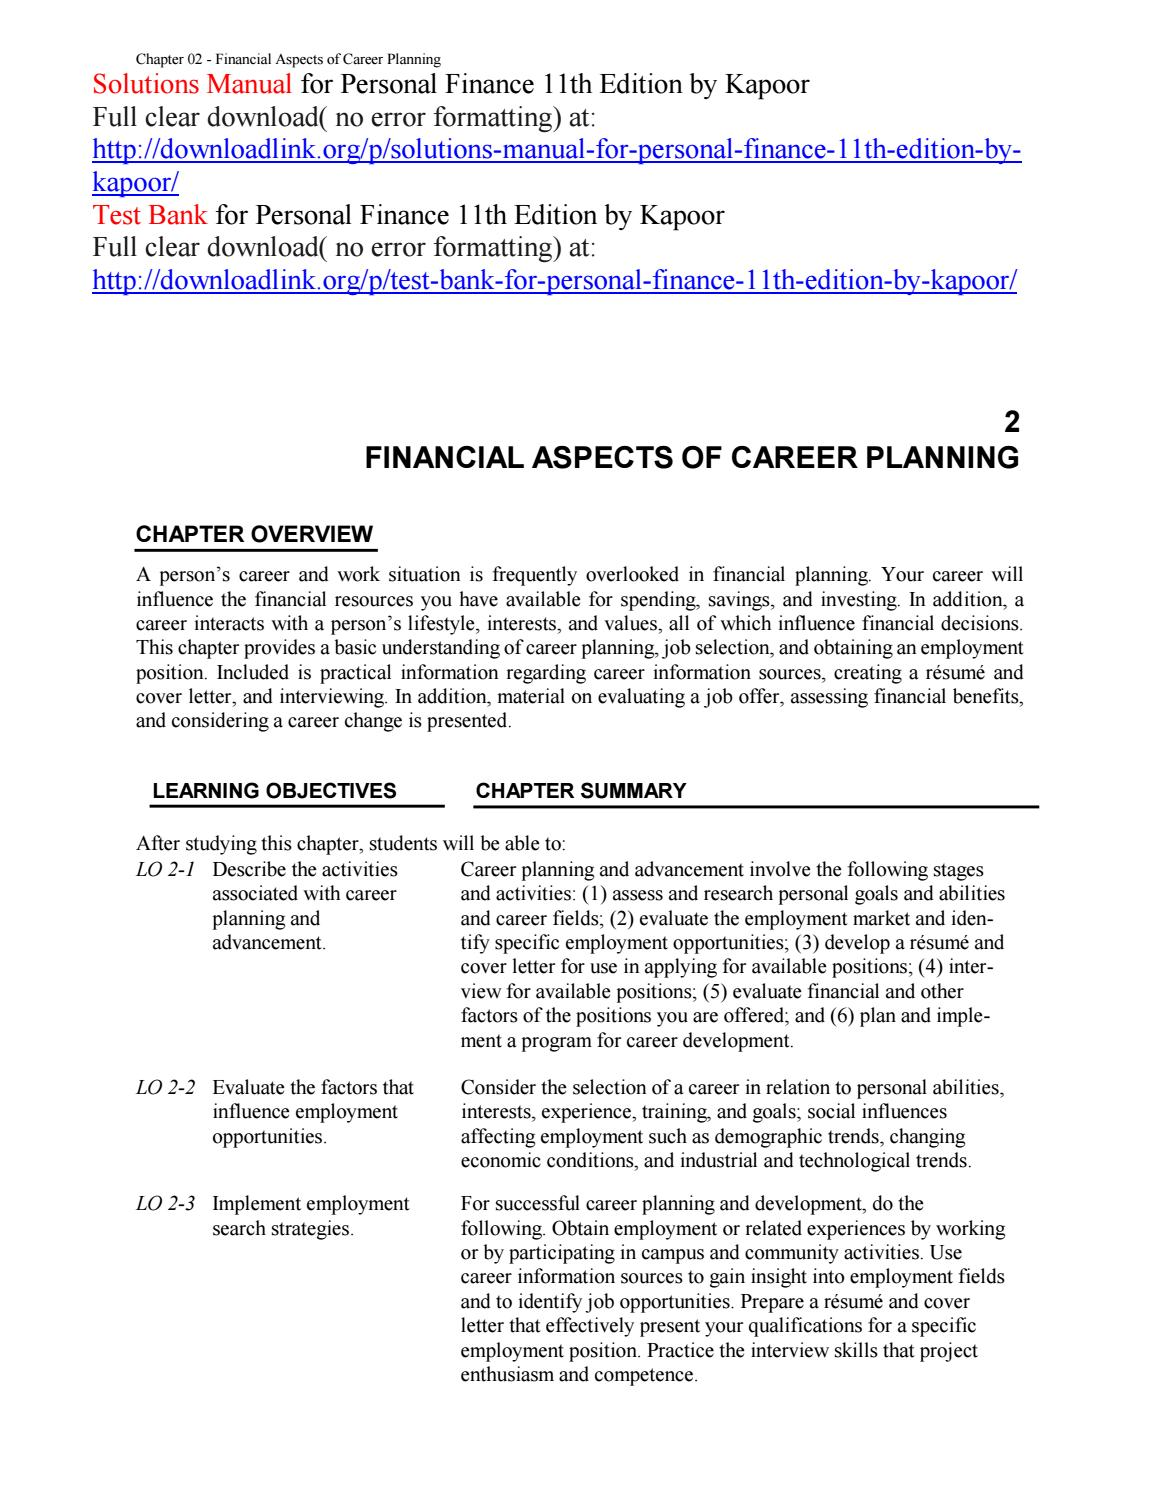 solutions manual for personal finance 11th edition by kapoor by rh issuu com UNDP Finance Manual See Finance Manual